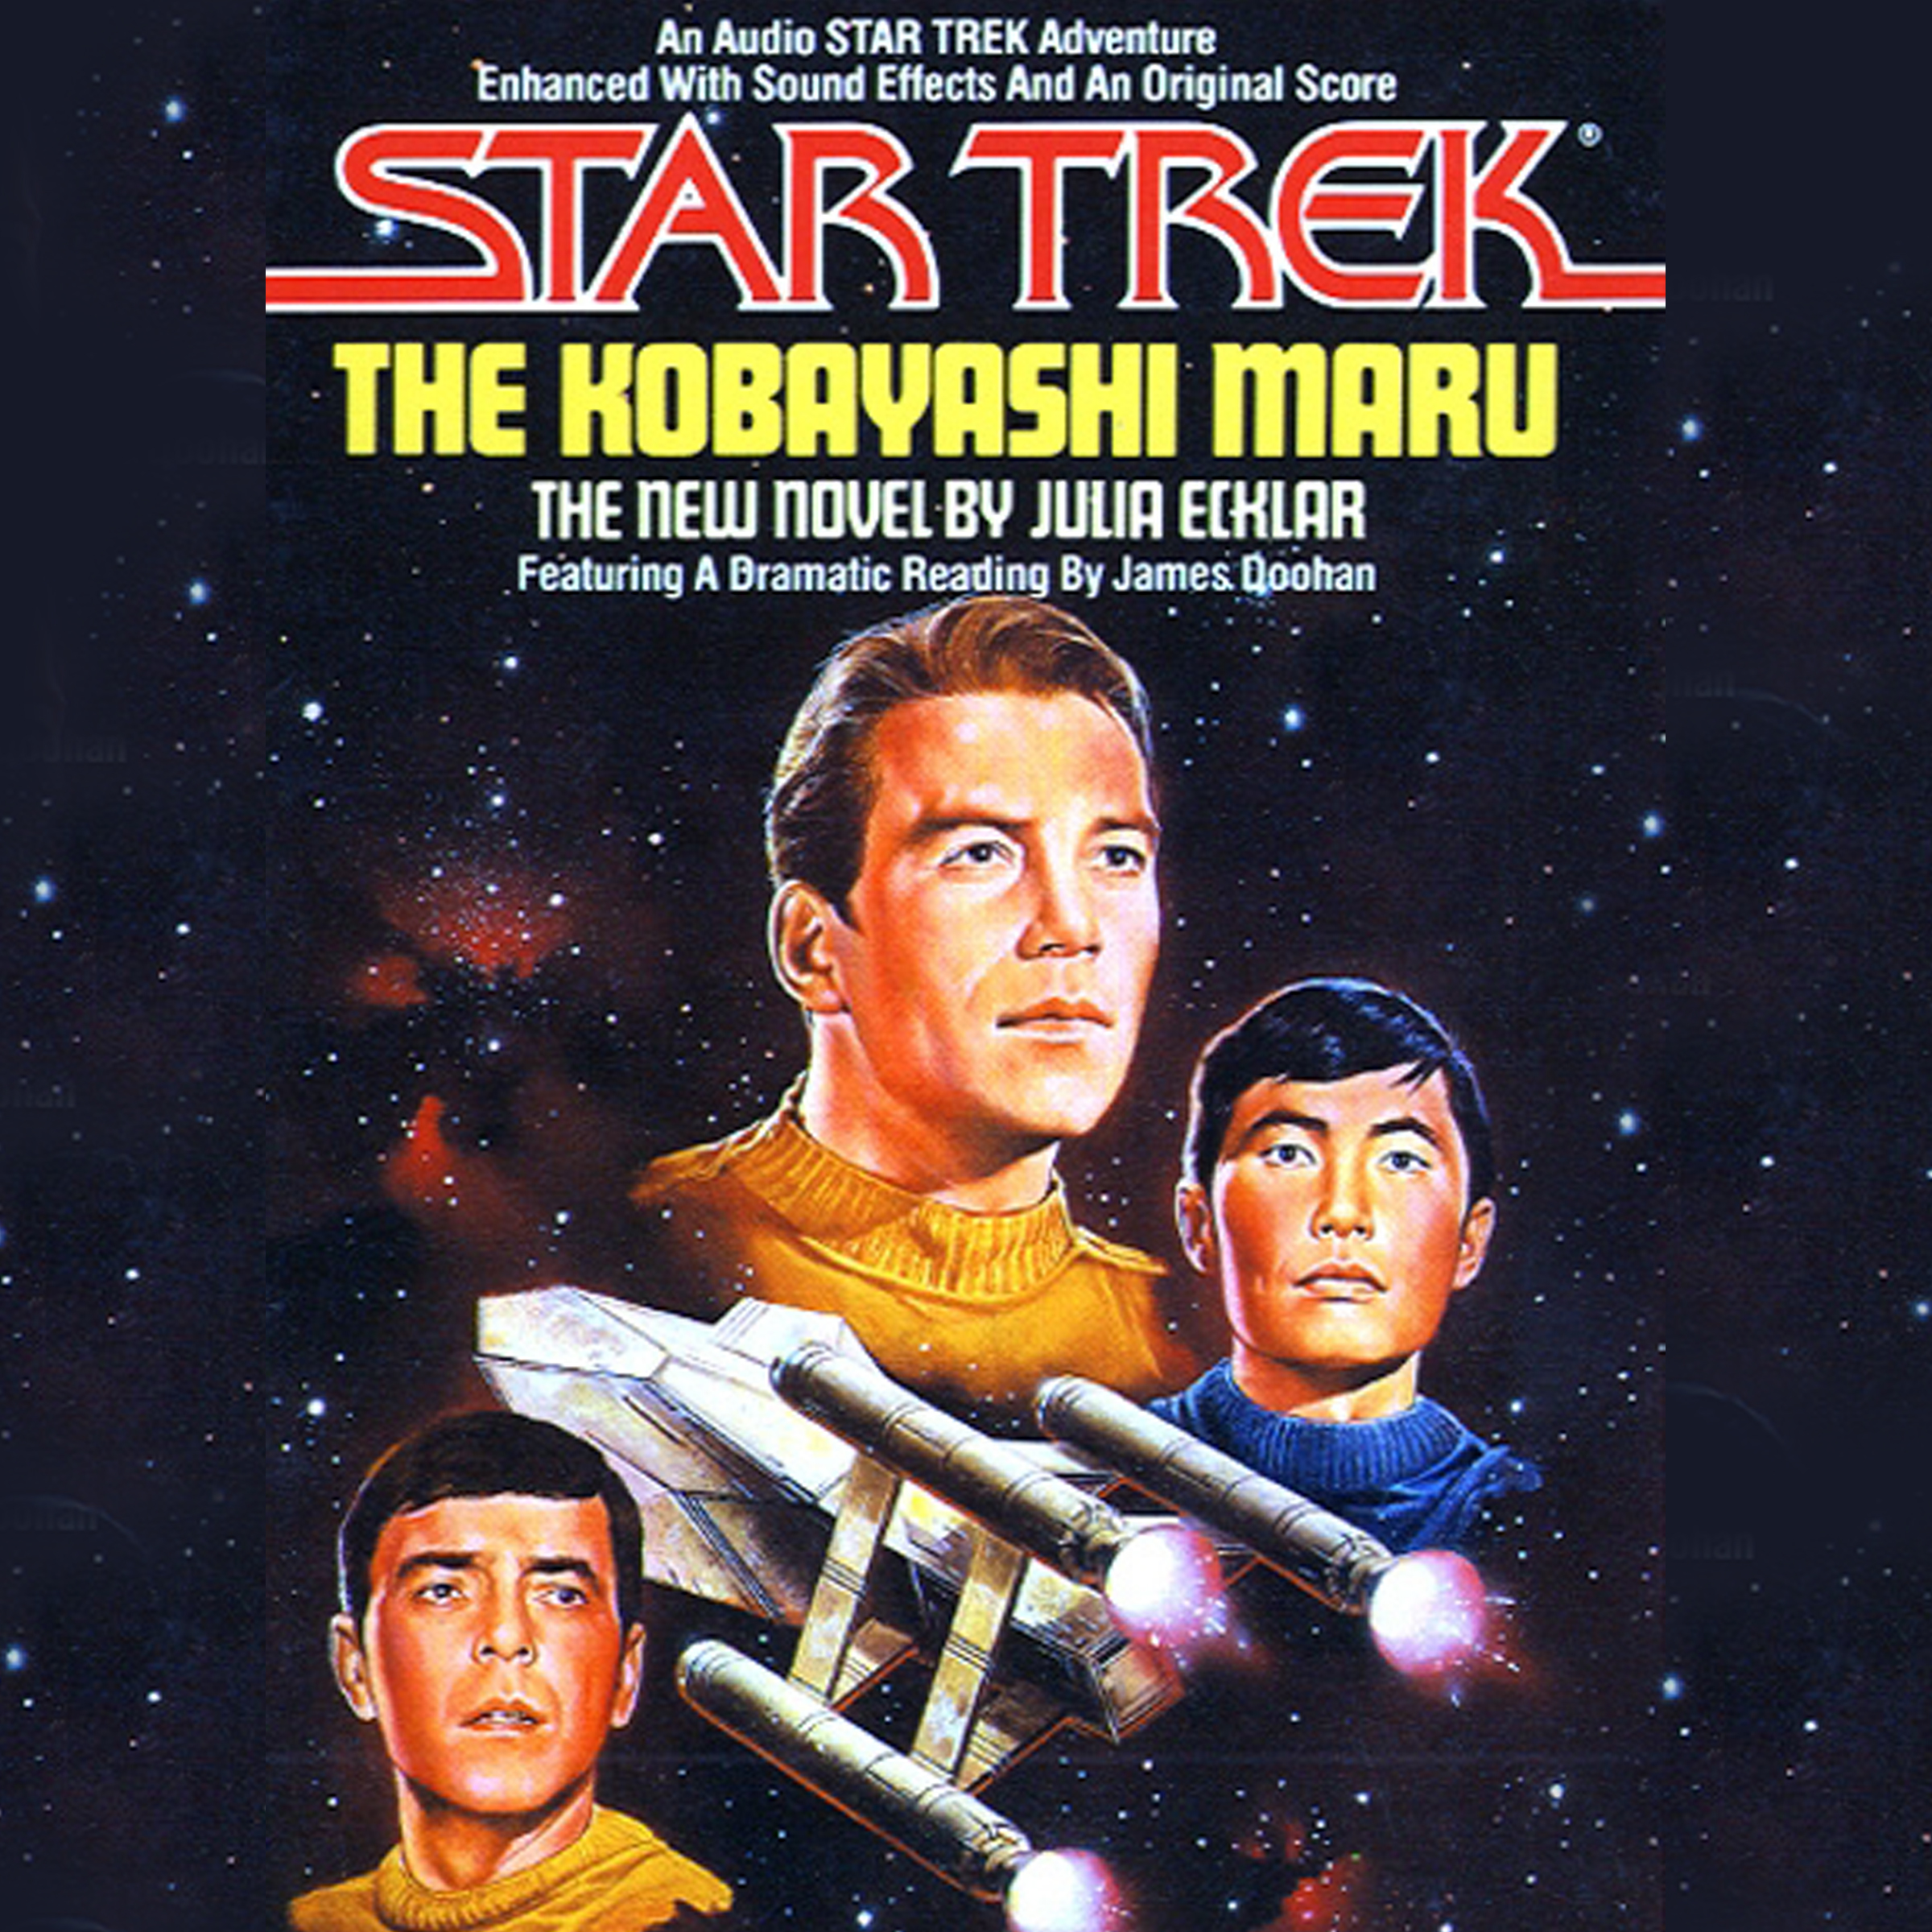 Star-trek-kabayashi-maru-9780743546751_hr